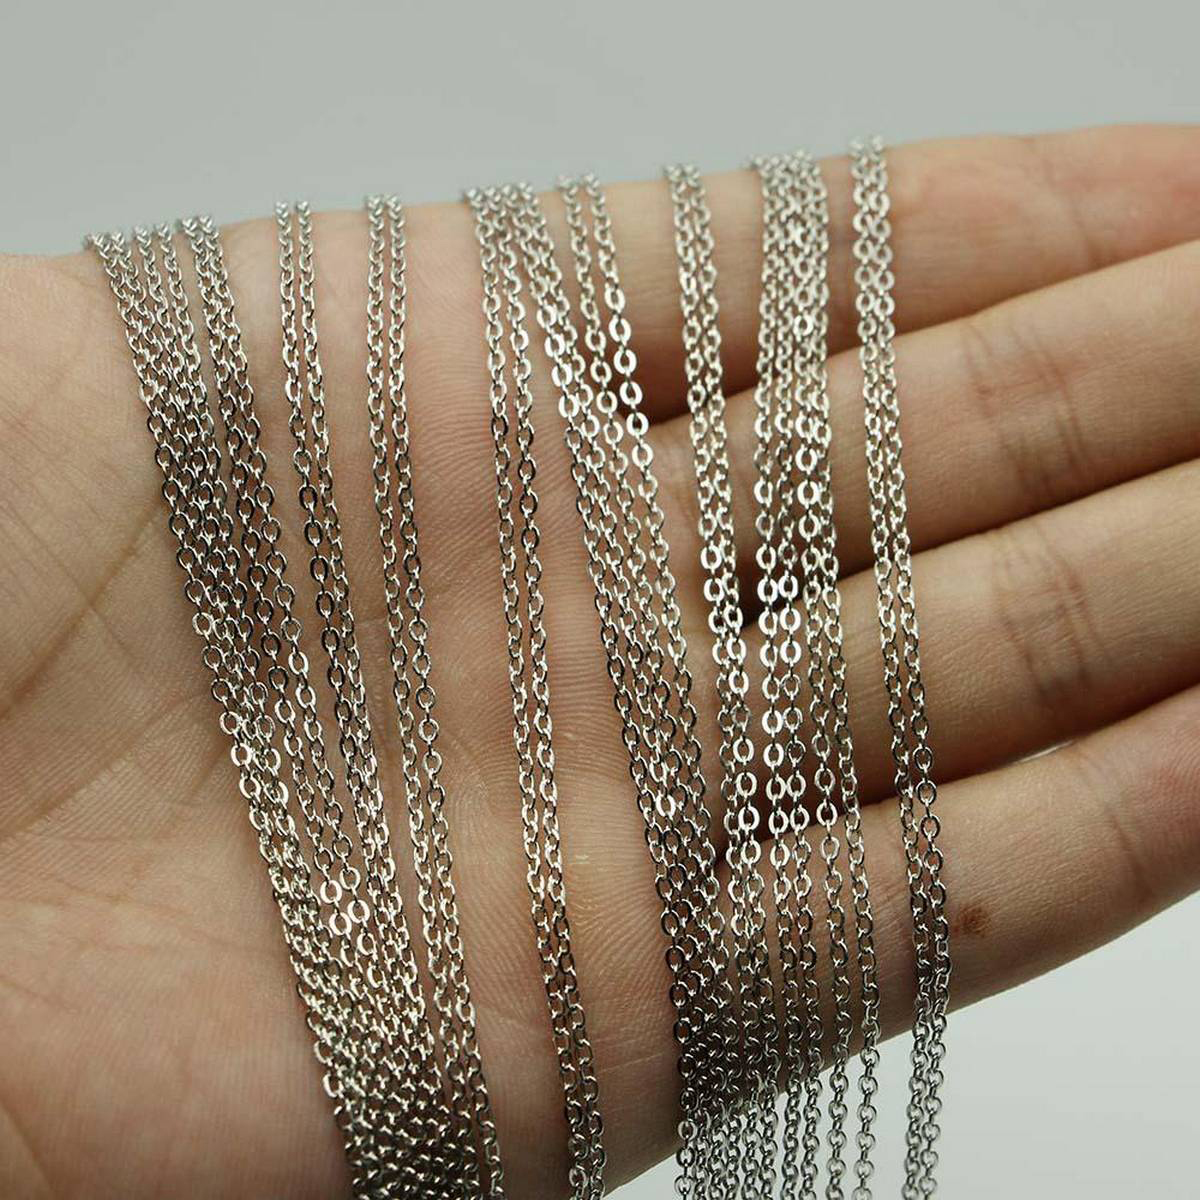 50cm Steel Necklace Charm Chains For DIY Jewelry Findings Making Materials Accessories